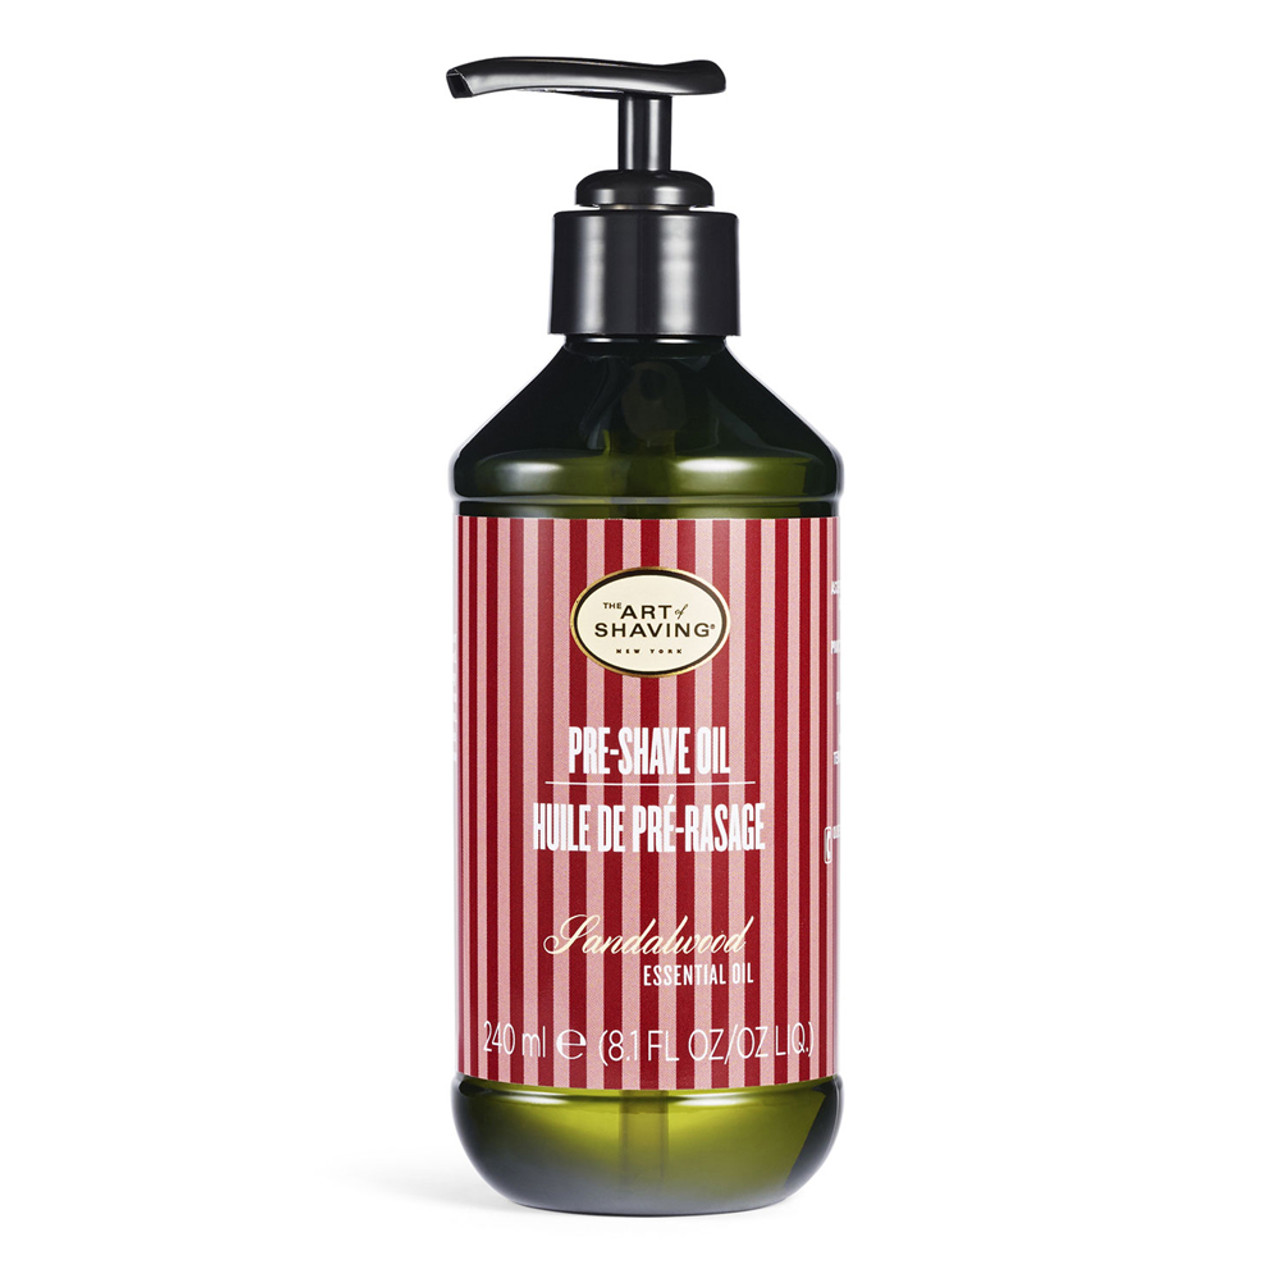 The Art of Shaving Pre-Shave Oil Large Pump - Unscented